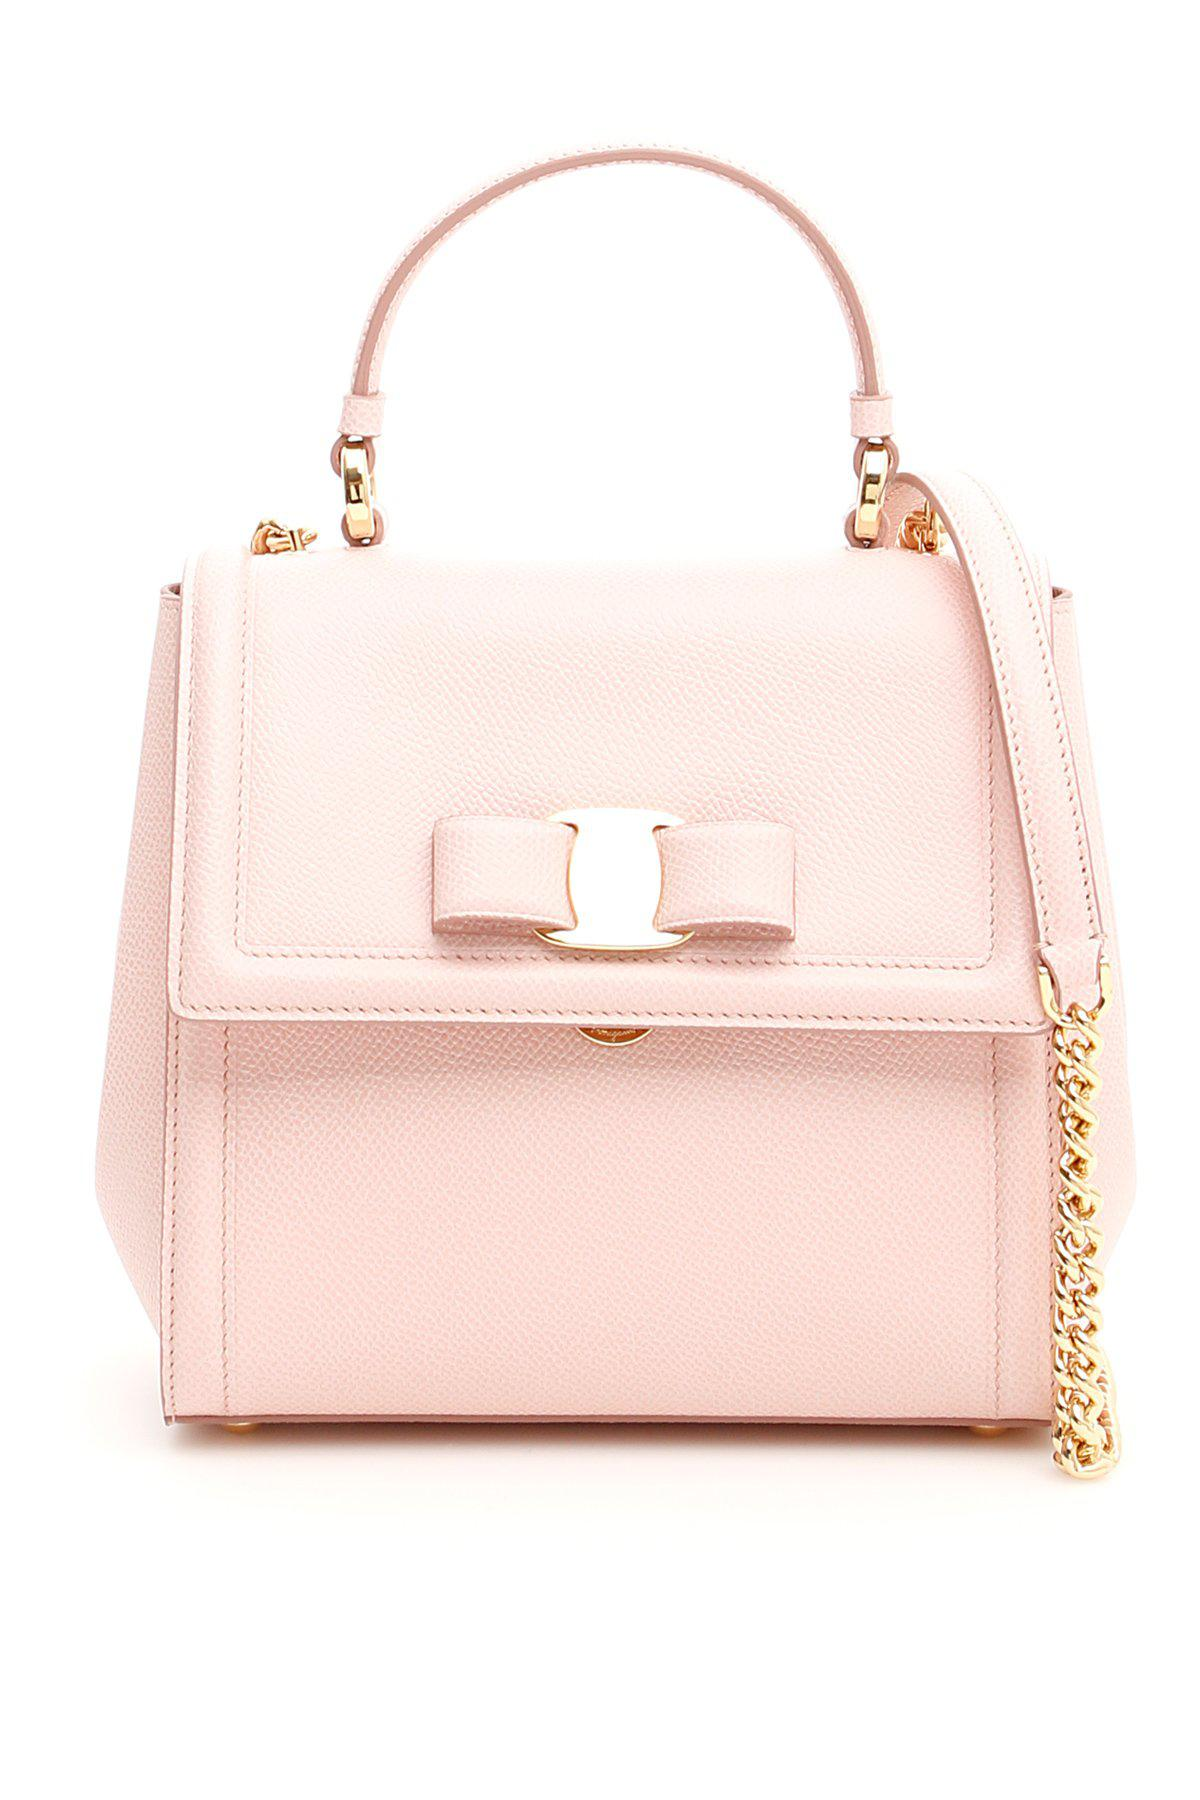 1d94643ef2 Ferragamo Carrie Tote Bag in Pink - Lyst